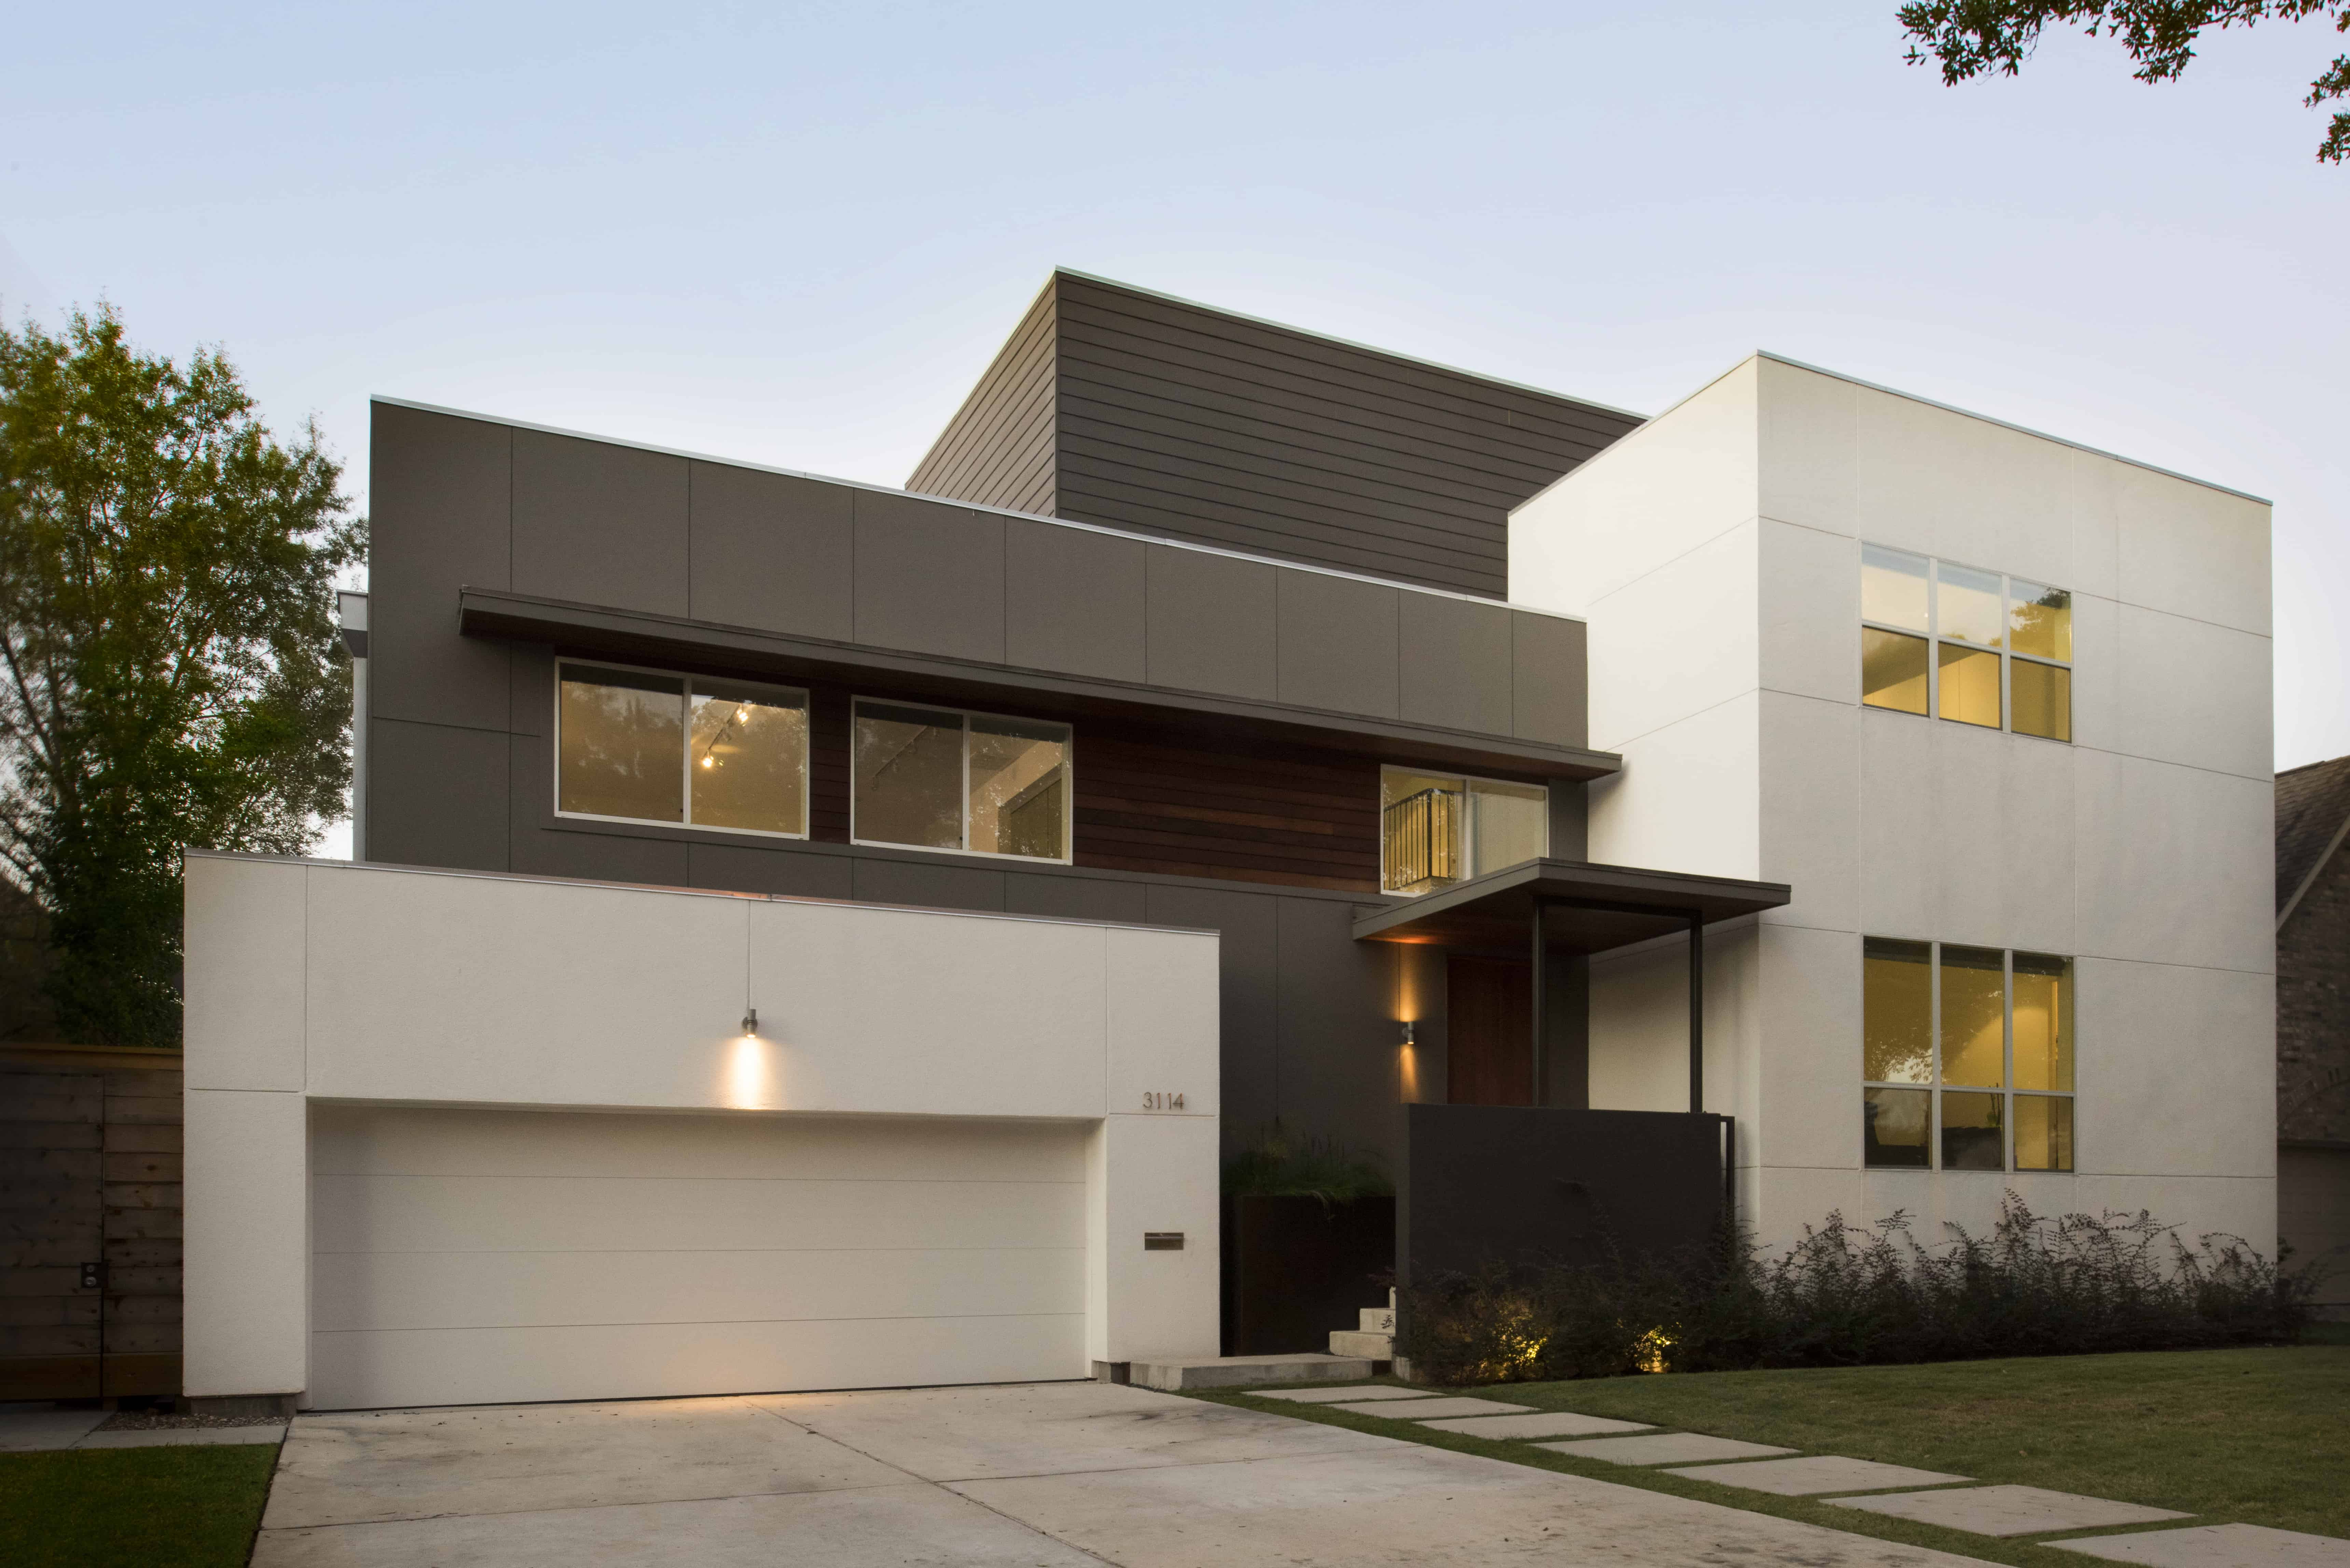 Glen Haven Brasewood Modern Home